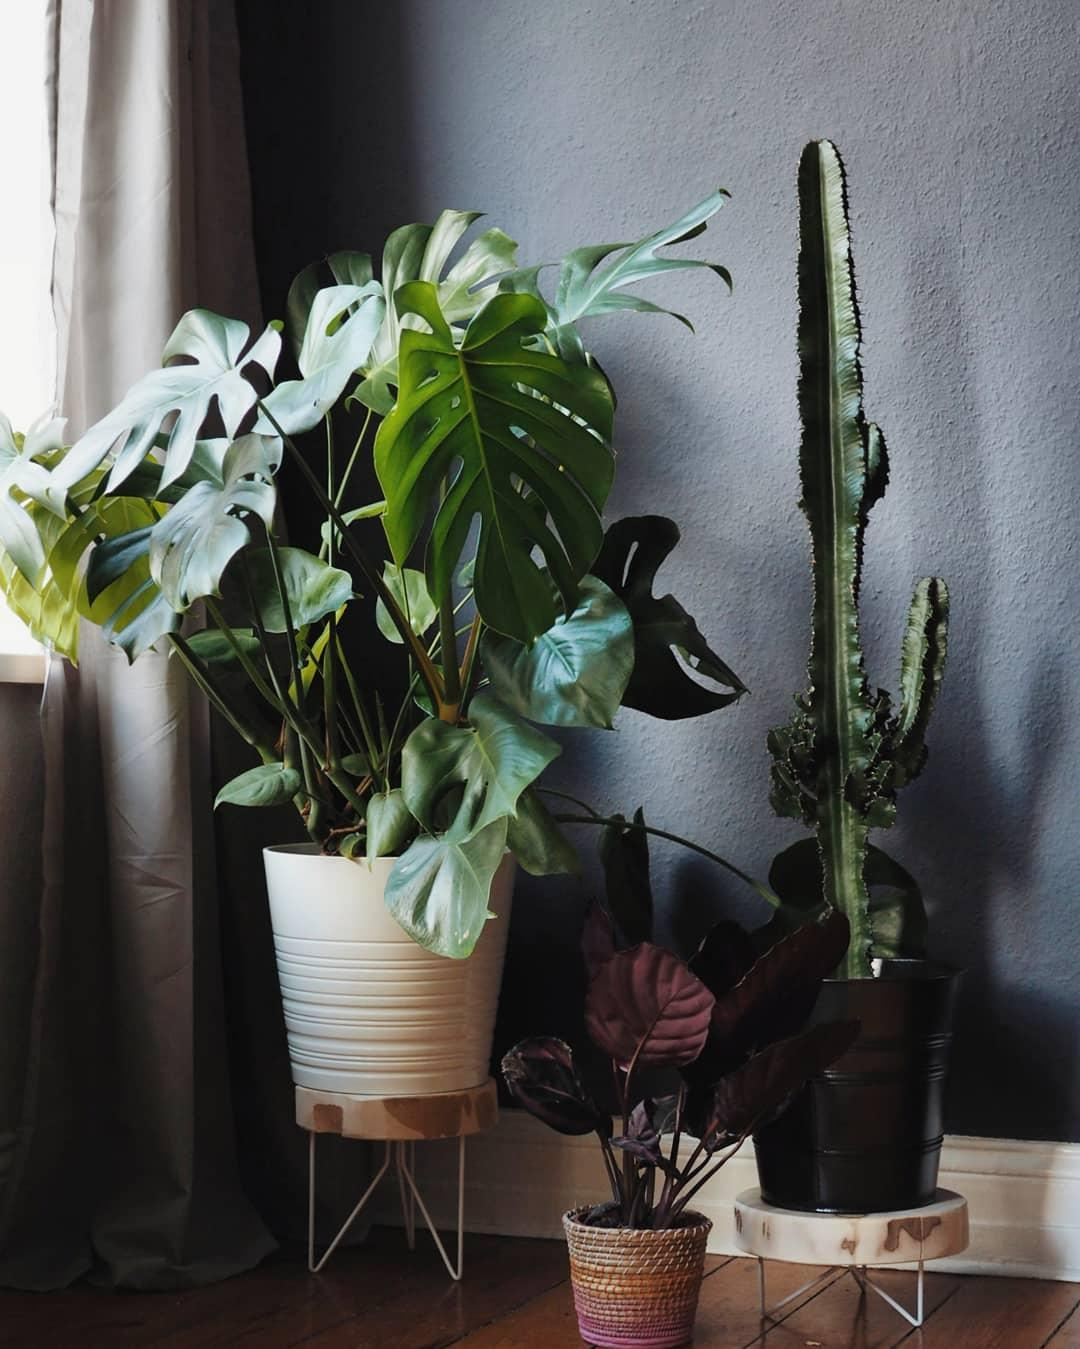 Plants make people happy. 